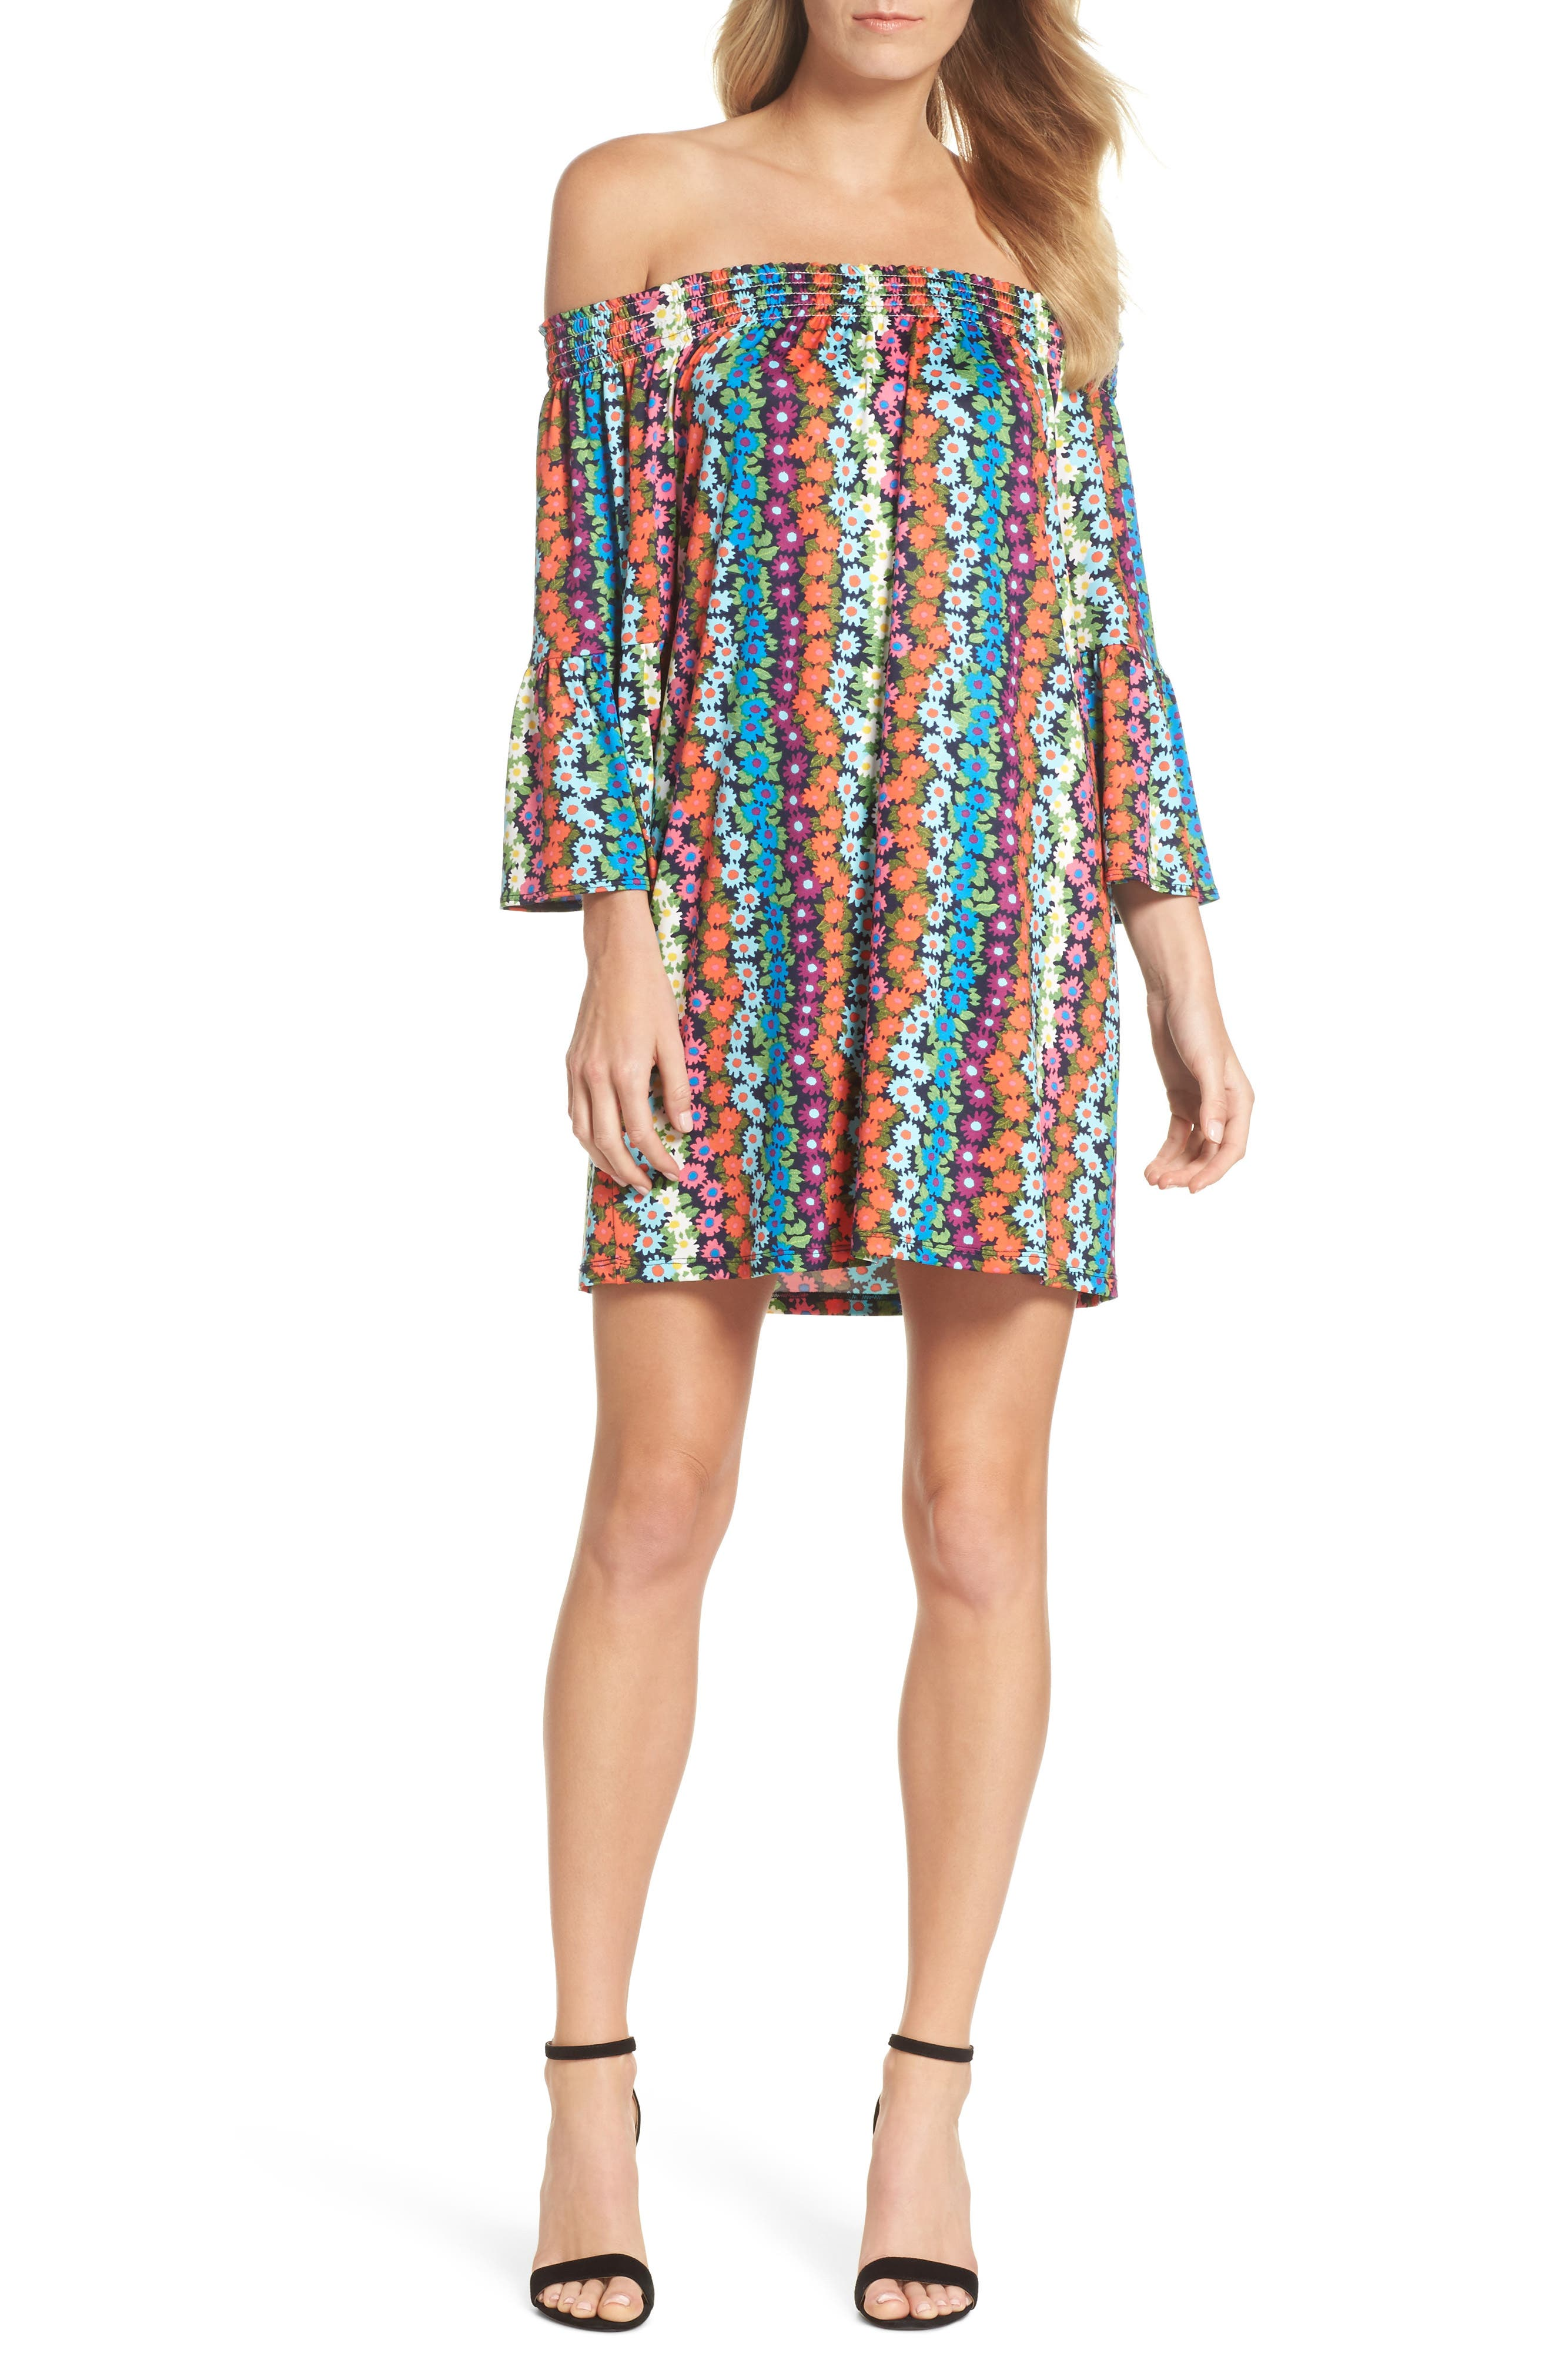 Trina Turk Off the Shoulder Bell Sleeve Dress,                             Main thumbnail 1, color,                             Multi